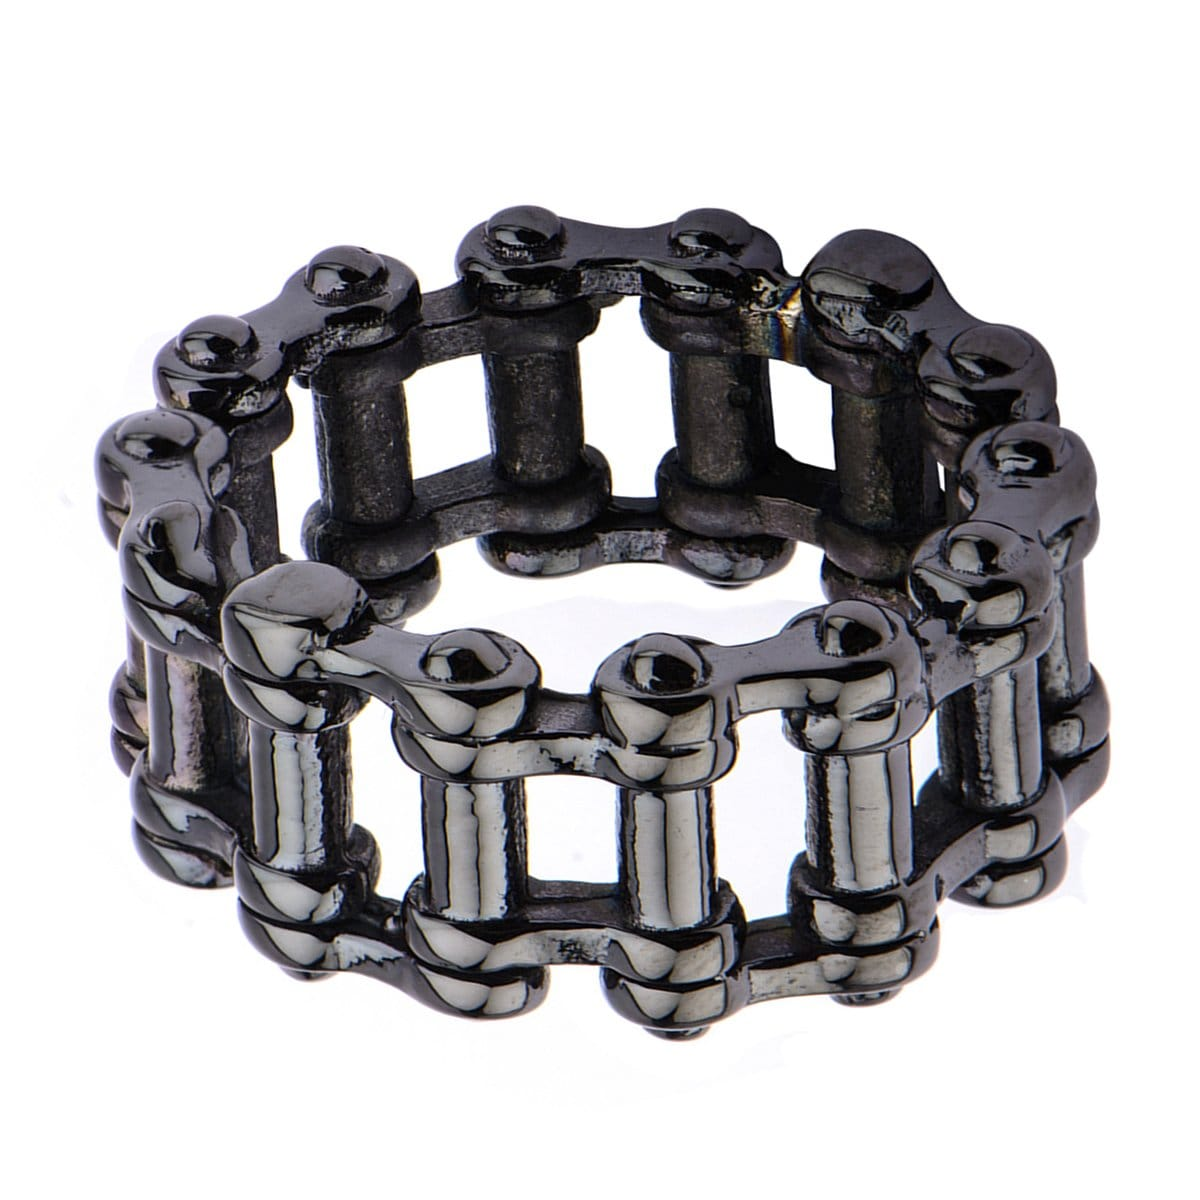 Black Stainless Steel Motorcycle Chain Ring Rings